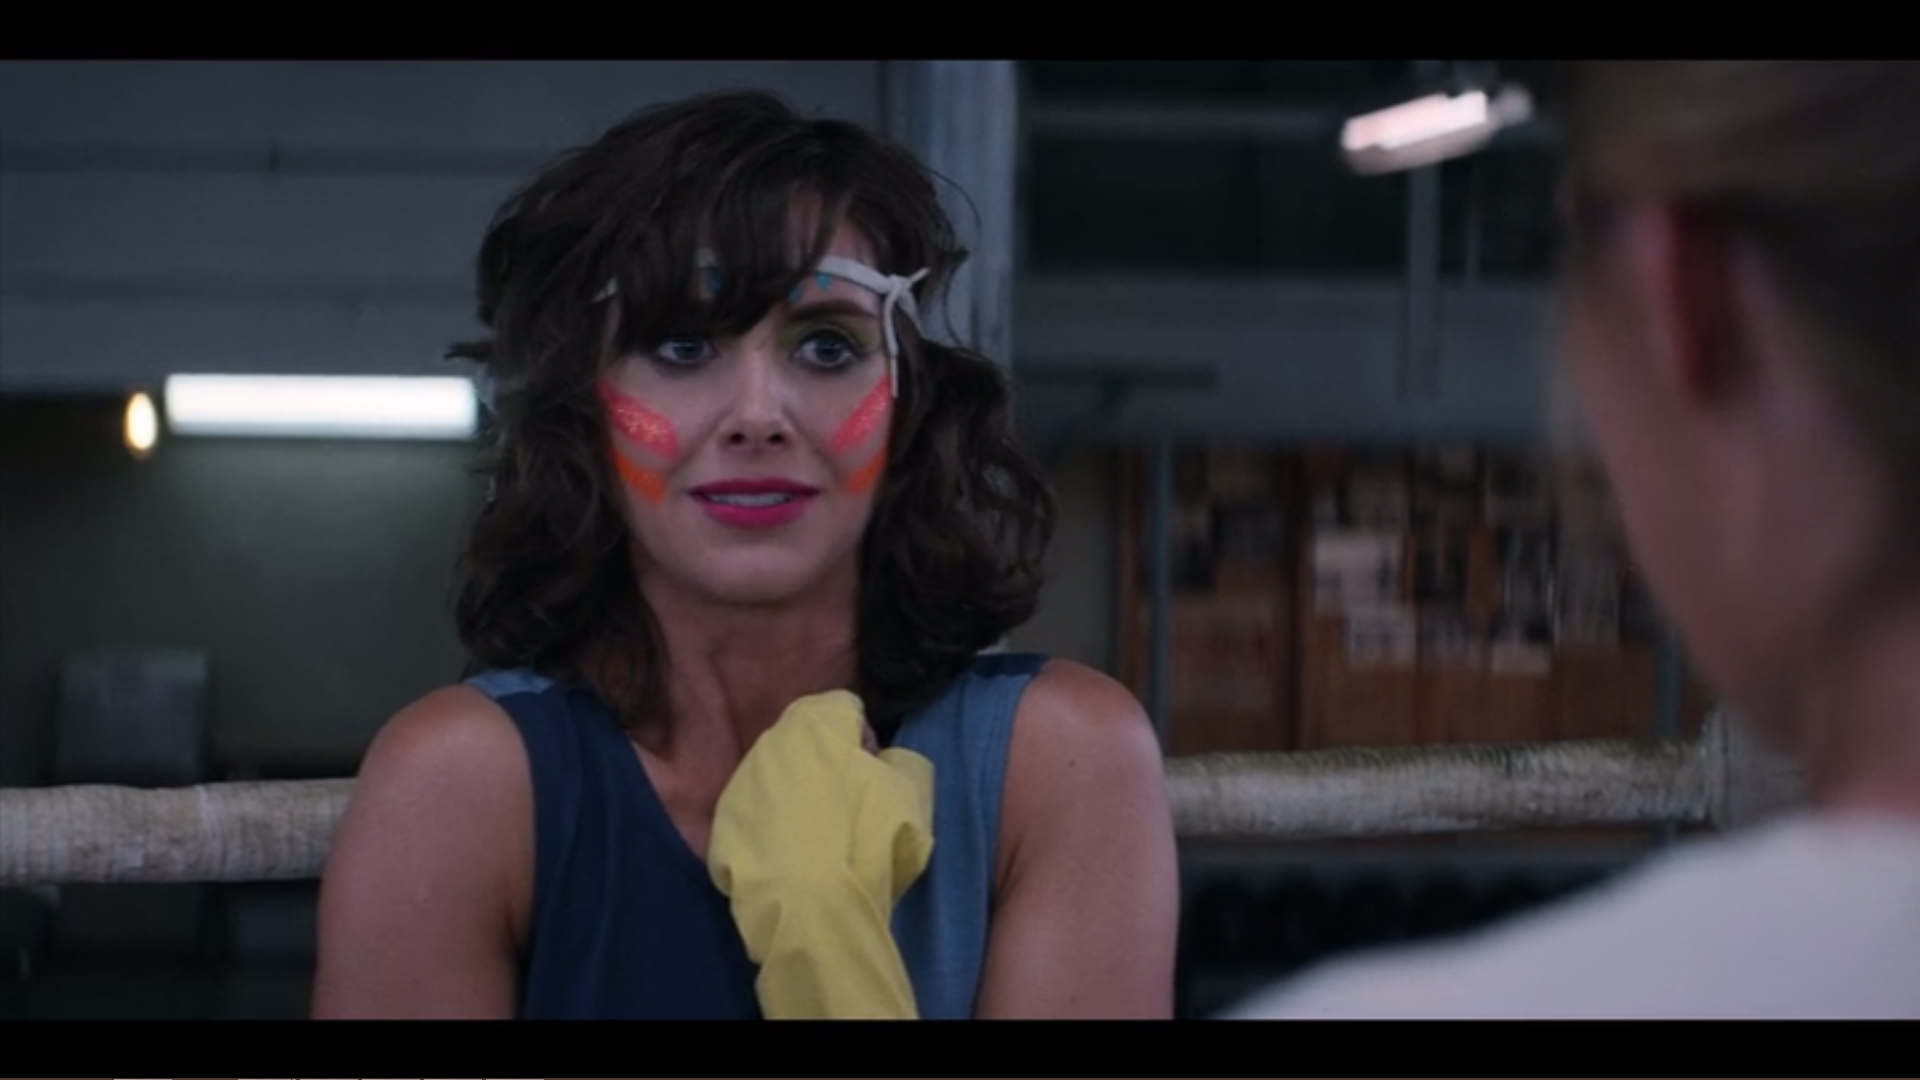 Alison Brie Glow Boobs showboat grappling - personology and relational science